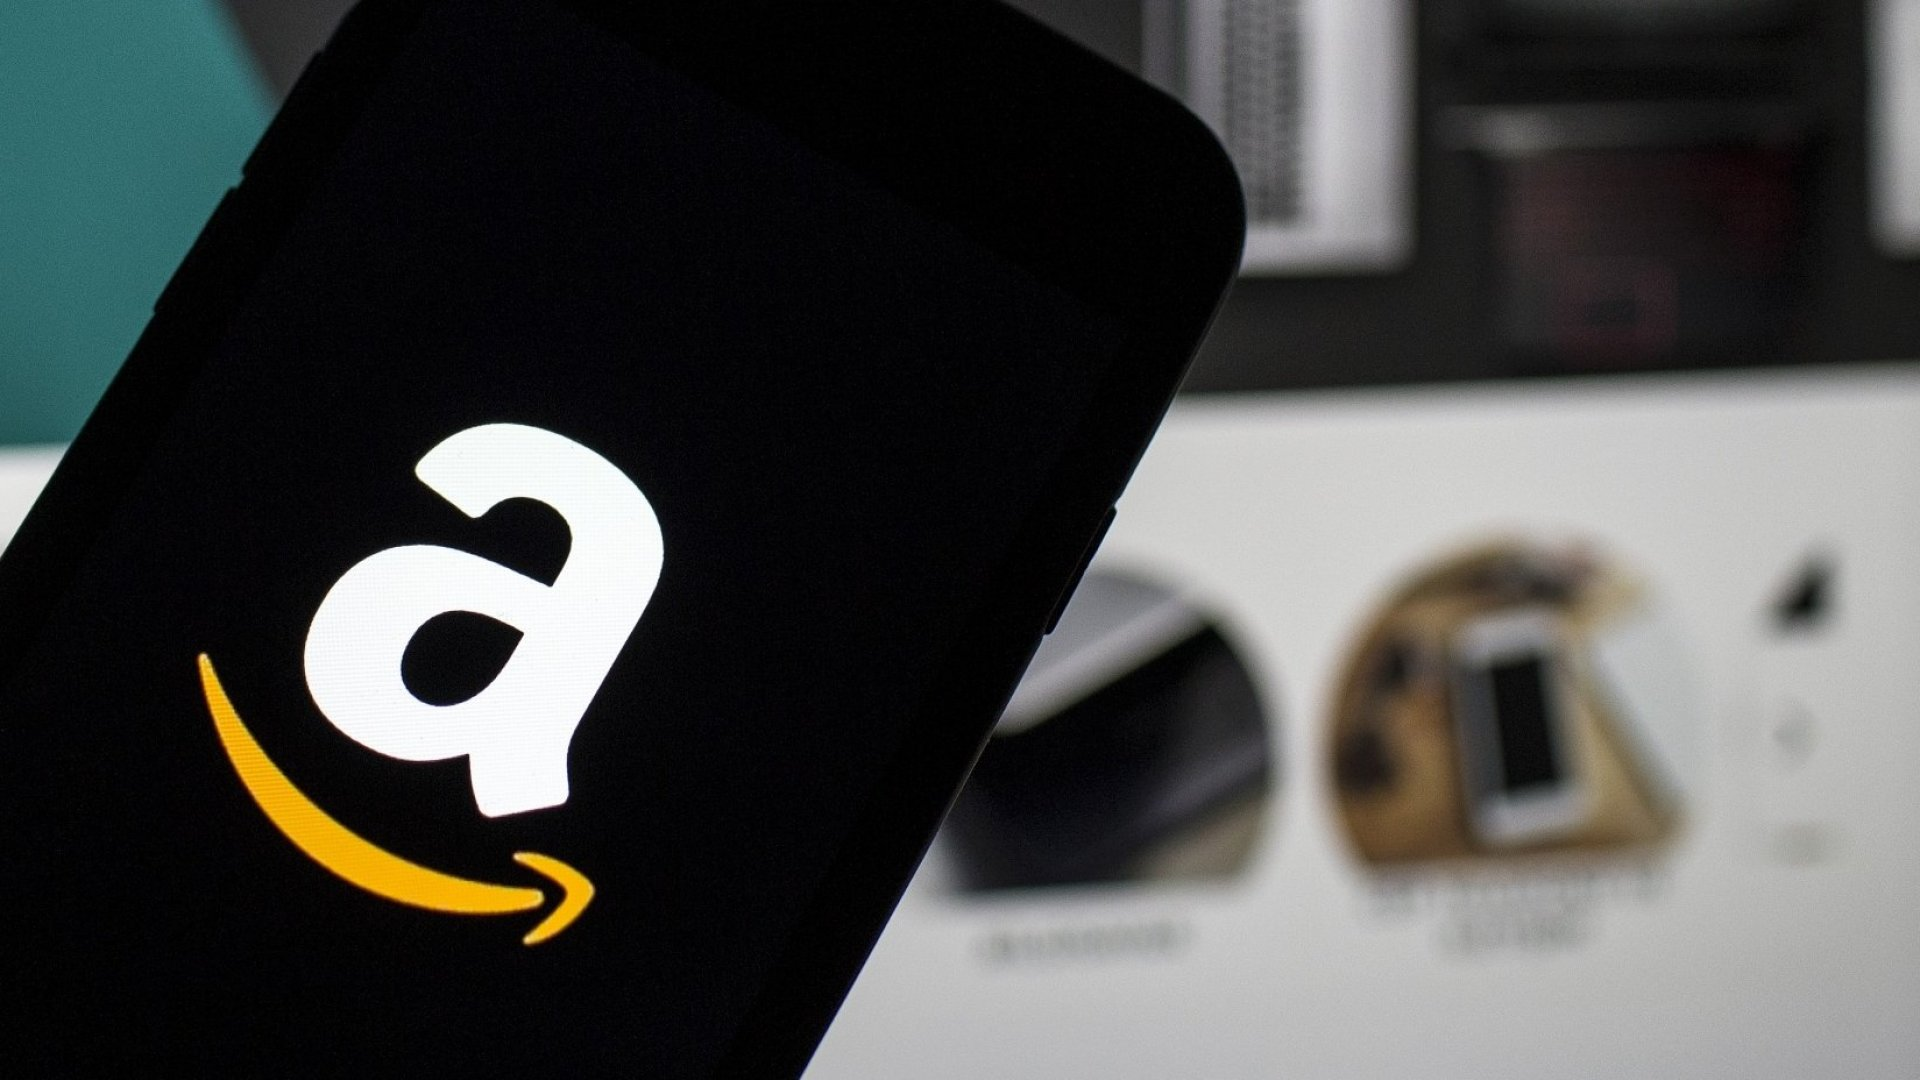 Amazon's Free Shipping Offer Is More Like Getting a Lump of Coal. Here's How the Company Could Do Better